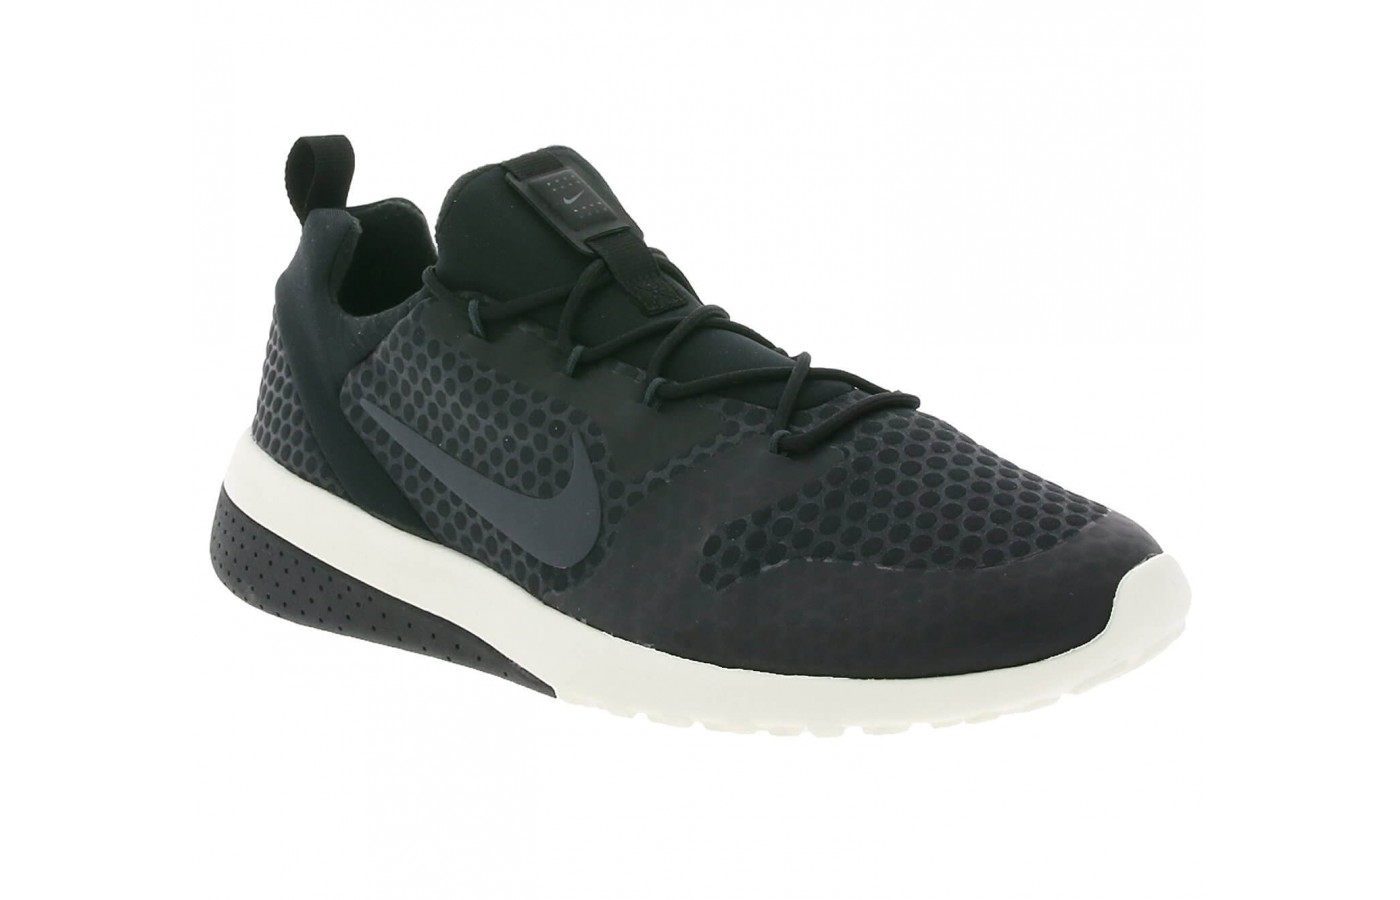 The Nike CK Racer is a new twist on traditional designs from the legendary footwear designer.